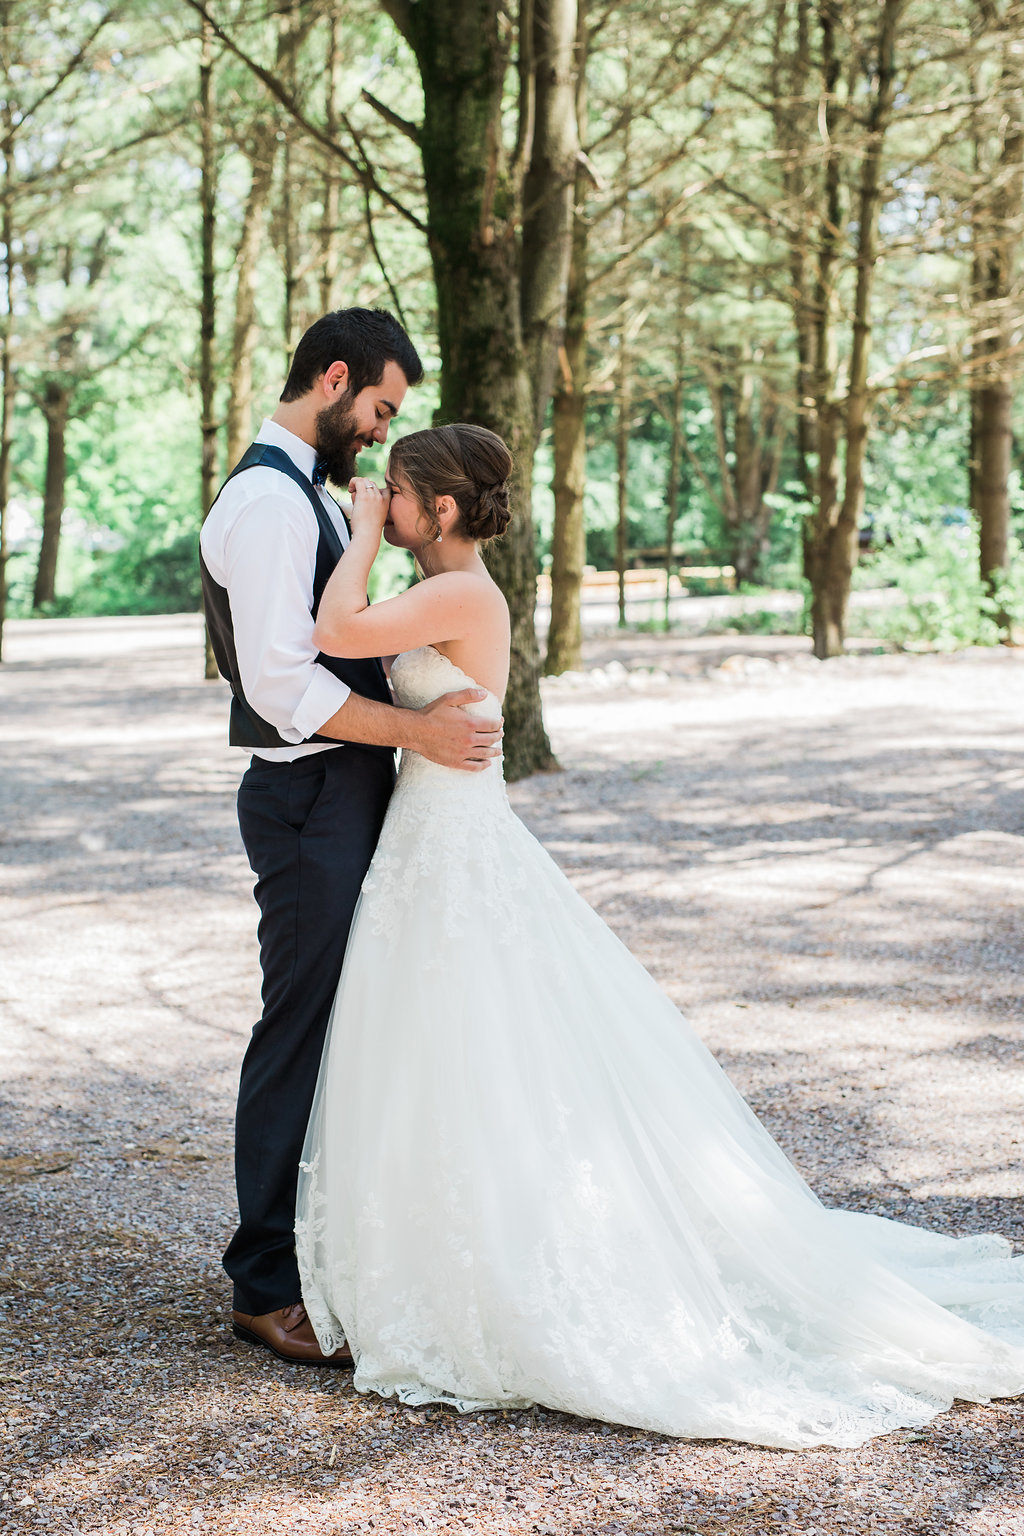 Reagan &Levi - The first look that brought everyone to tears...Photo: Katie Ricard Photography